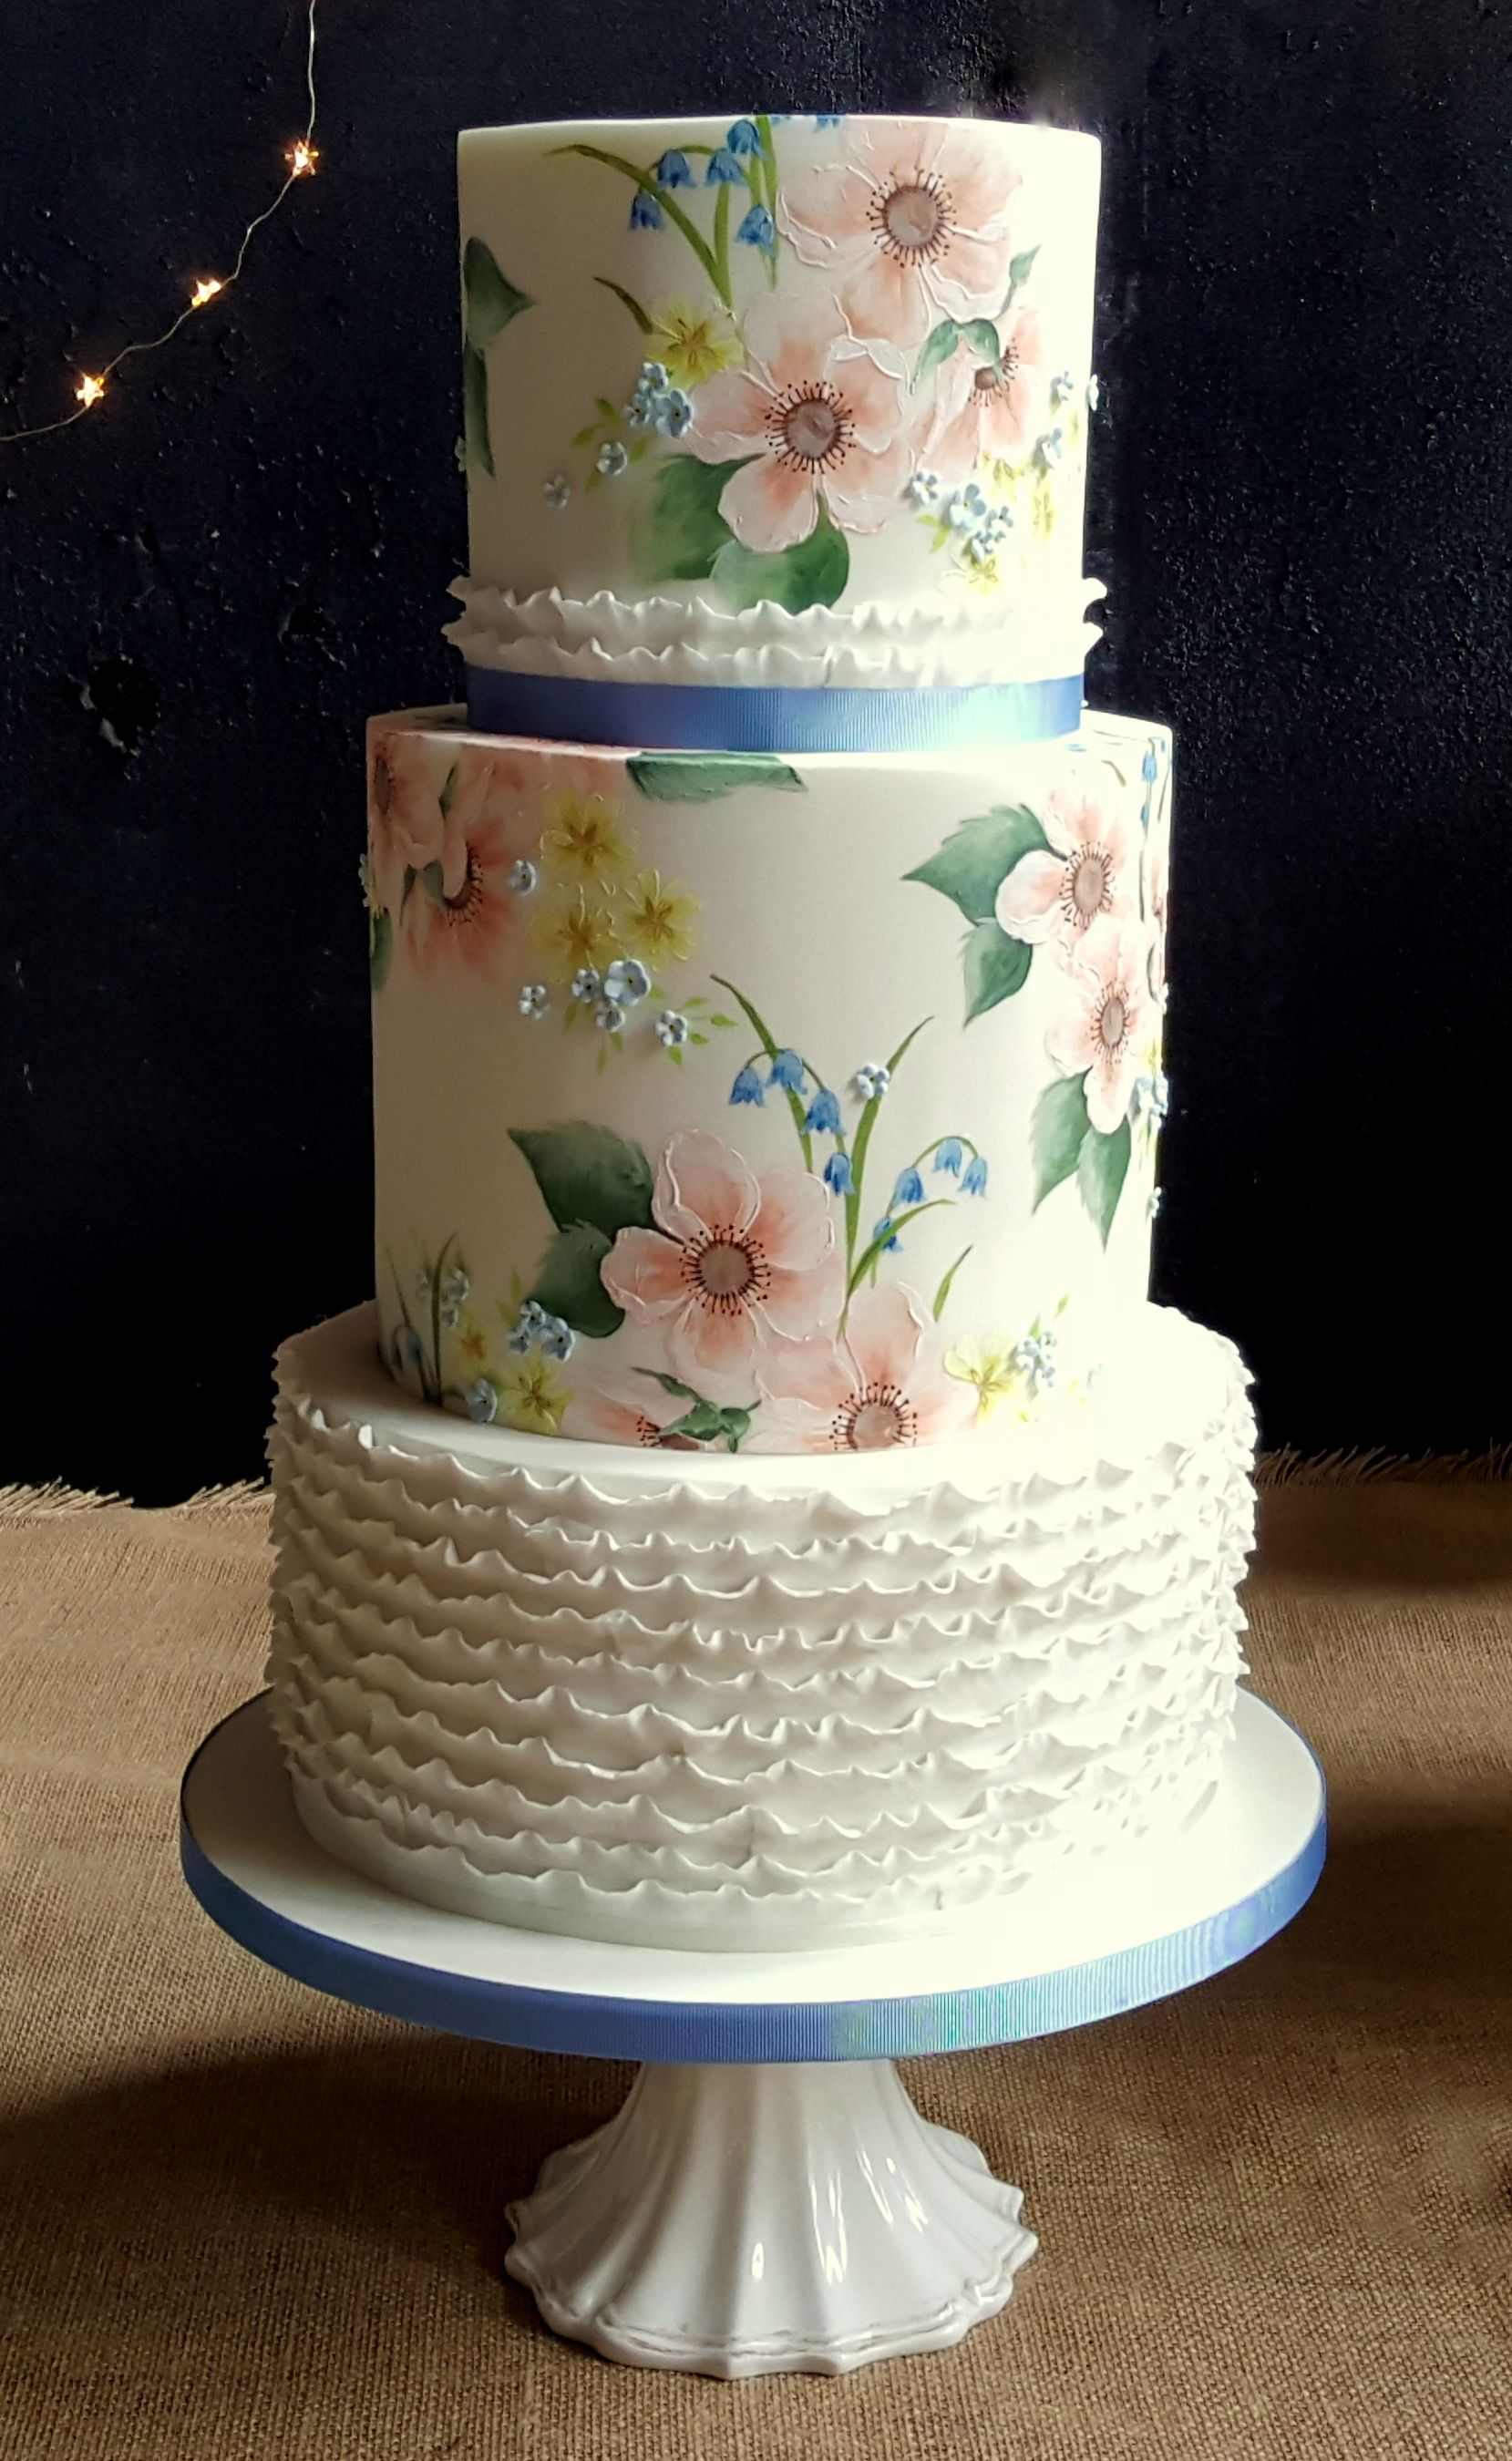 Hand Painted Wedding Cake With Spring Flowers Including Bluebells Primroses Forget Me Nots Painted Wedding Cake Hand Painted Wedding Cake Hand Painted Cakes